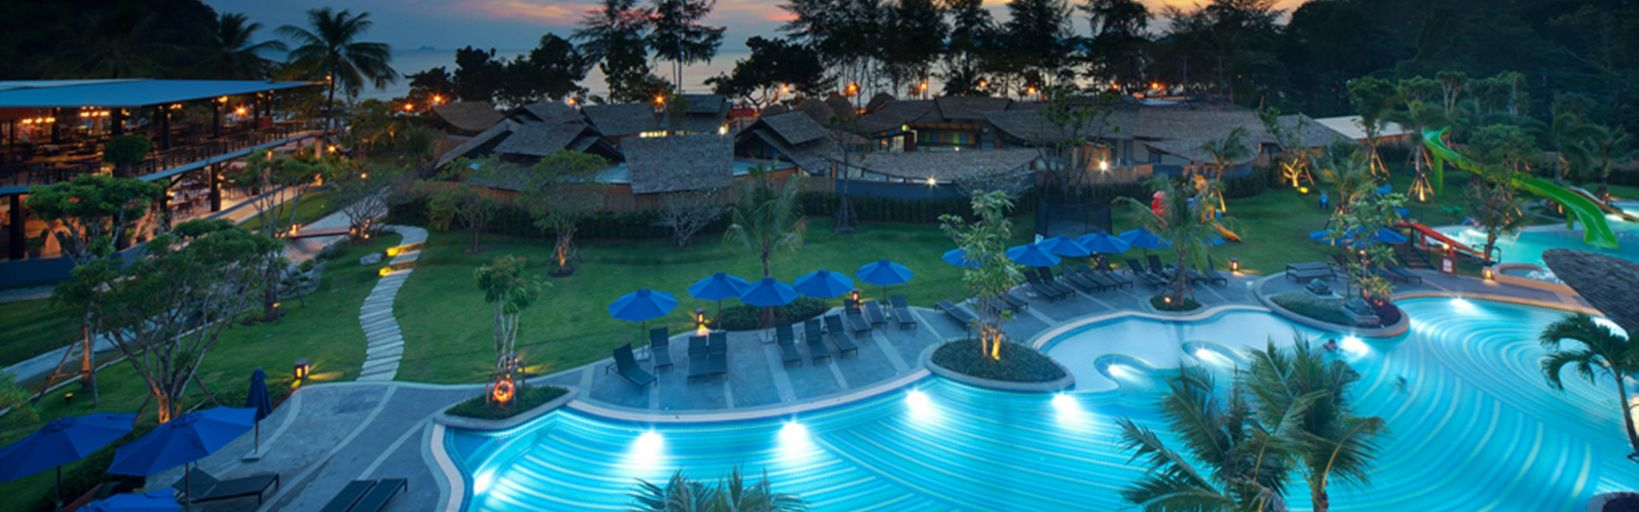 holiday-inn-resort-krabi-3551721996-16×5